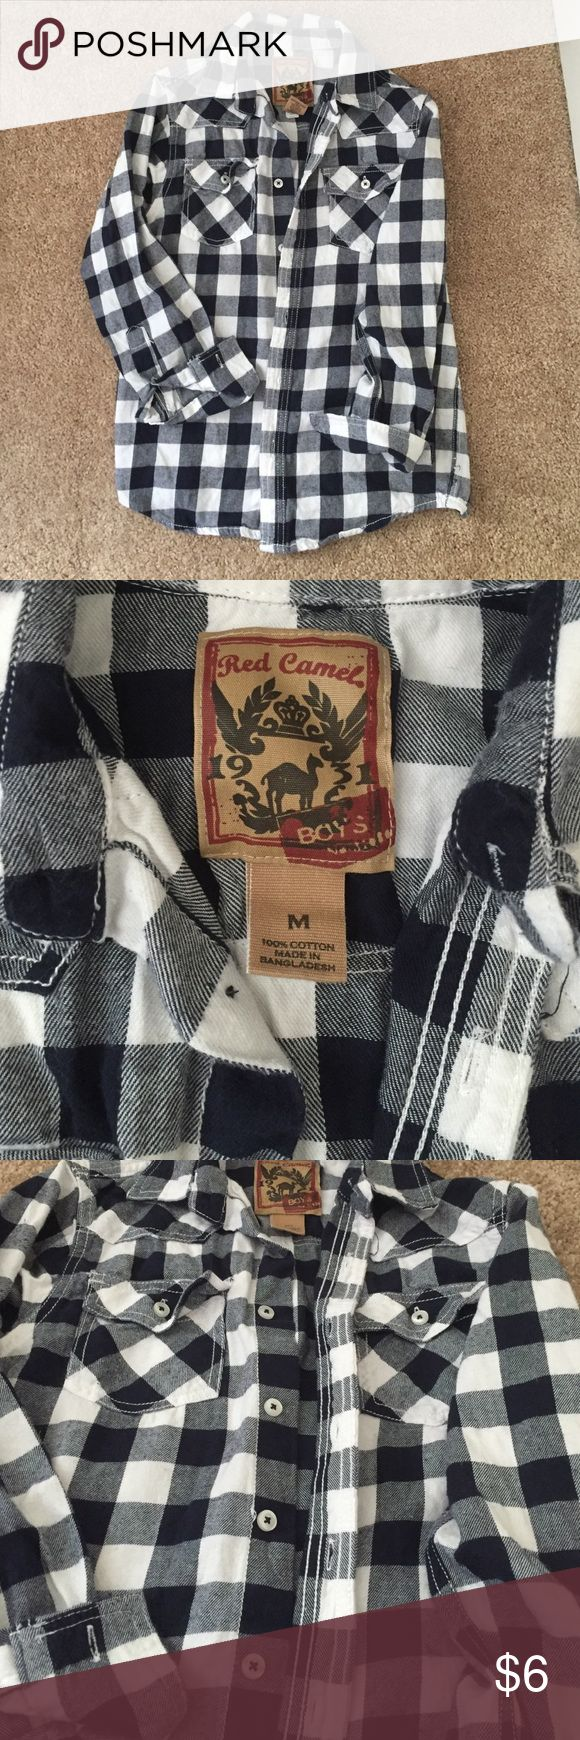 BOYS M 10/12 Red Camel shirt never worn NEVER WORN... M10/12 it's not really a flannel... Could be worn any season... Super cute Shirts & Tops Button Down Shirts